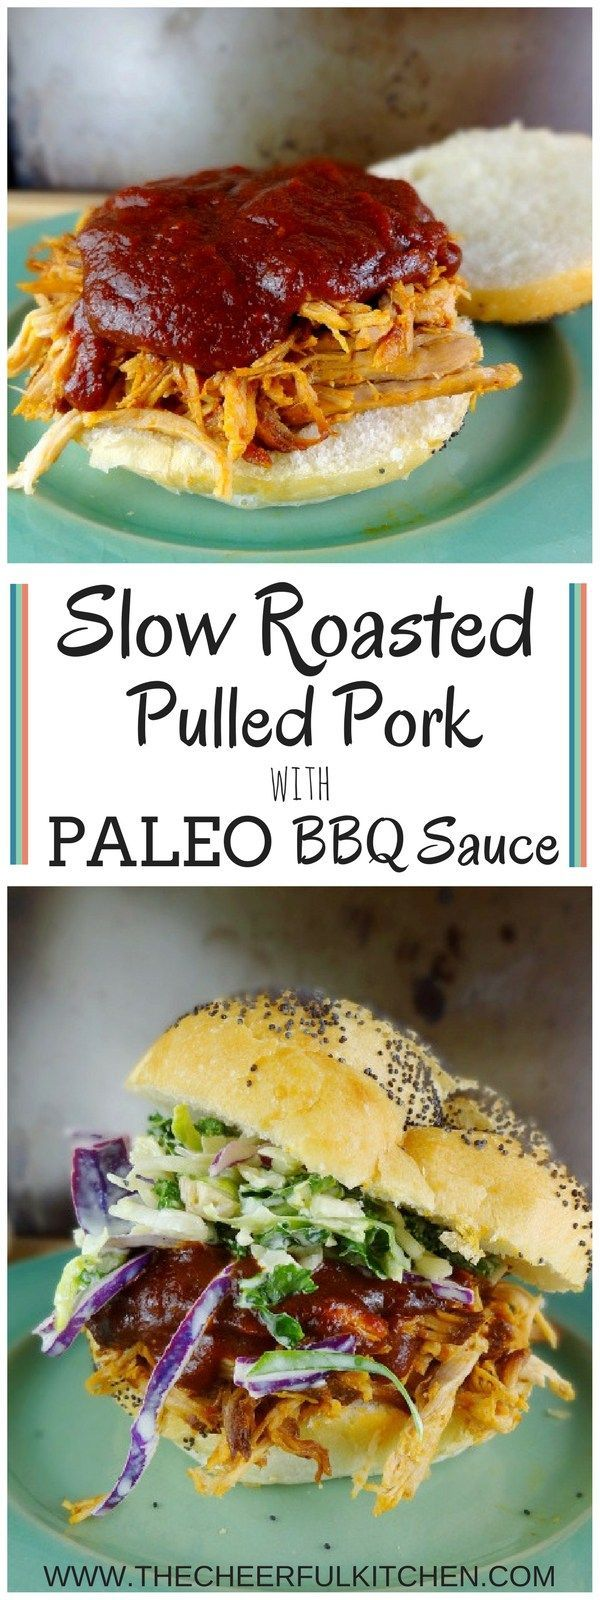 Slow Roasted Pulled Pork with Paleo BBQ Sauce | Recipe